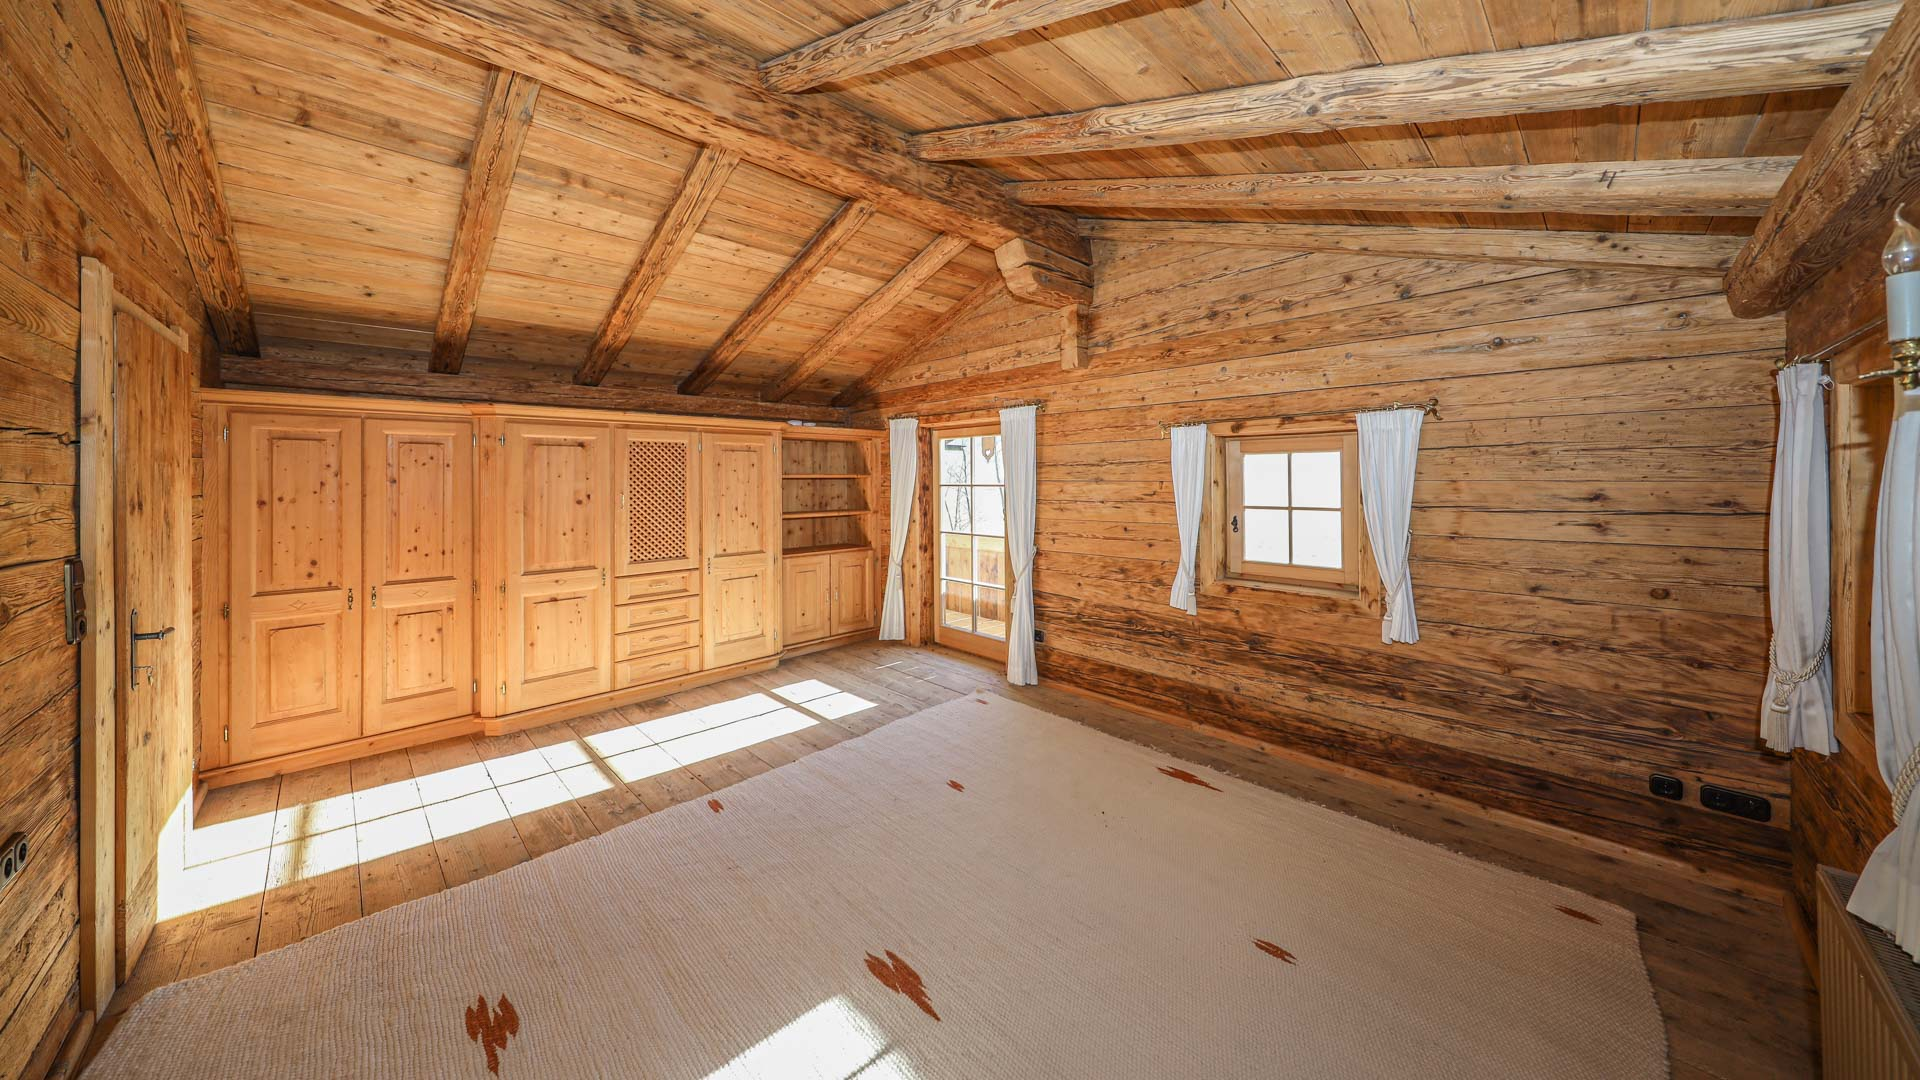 exklusive Chalet-Planung in Toplage - Immobilien Oberndorf